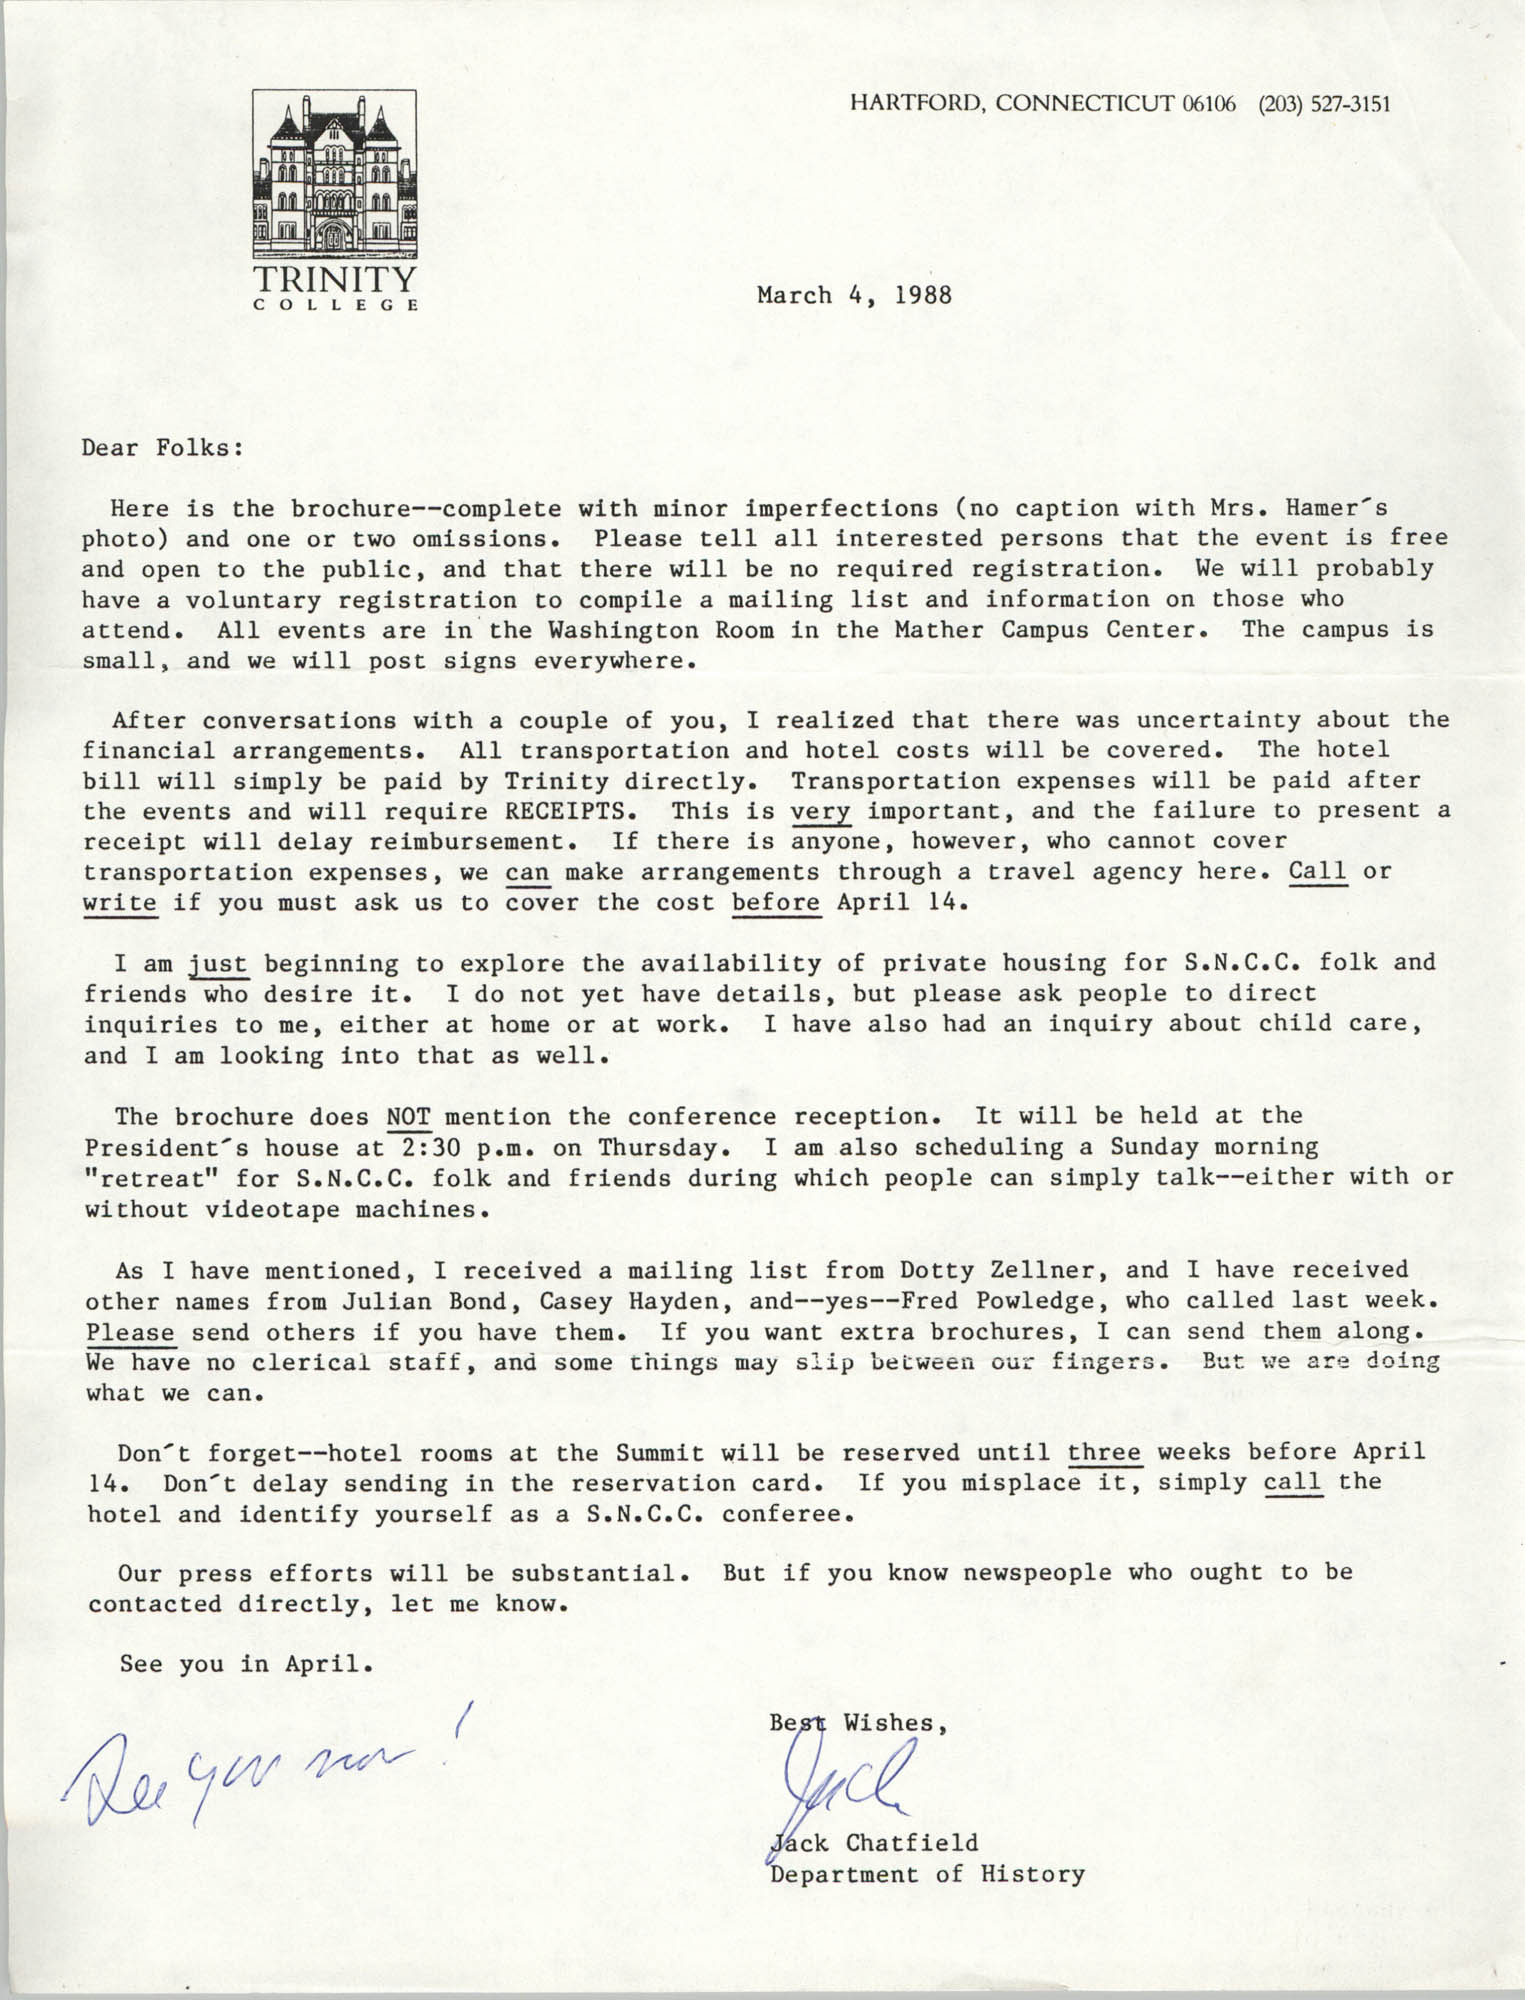 Letter from Jack Chatfield, March 4, 1988